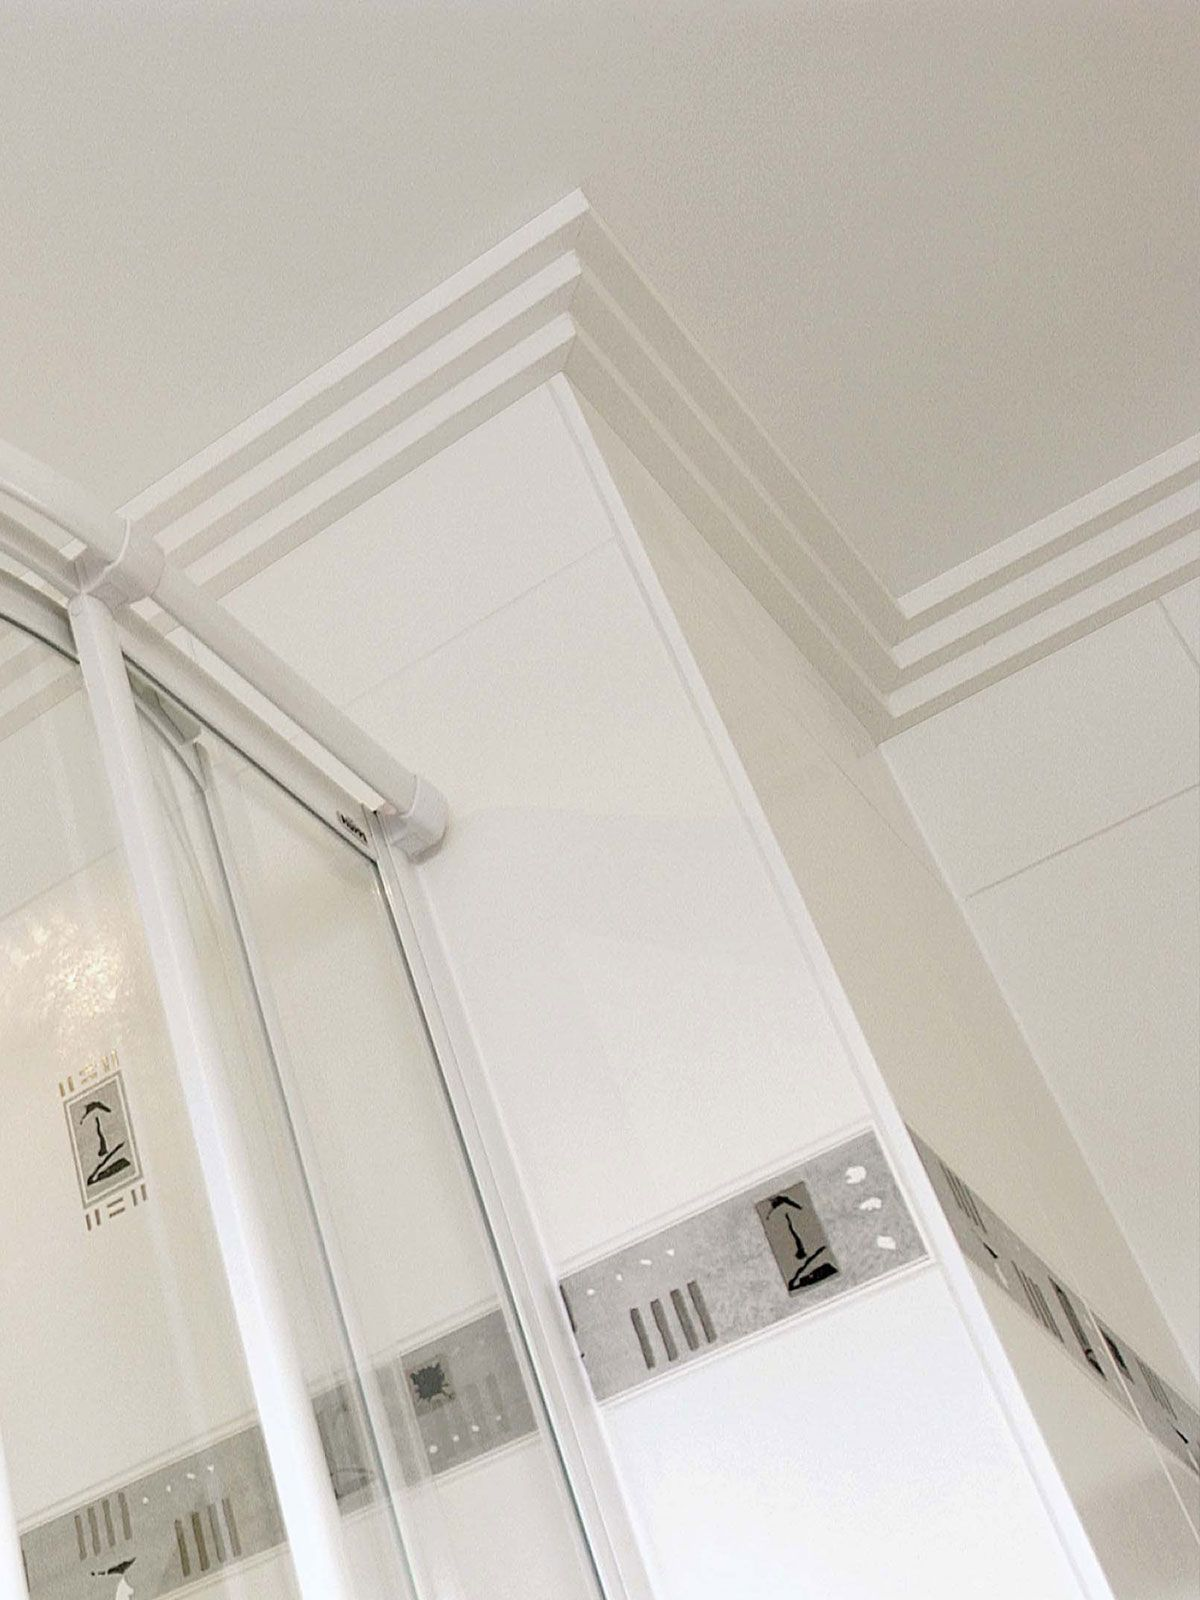 Modern Molding Collection Modern And Art Deco Style Crown Molding In 2020 With Images Art Deco Fashion Art Deco Door Miami Art Deco